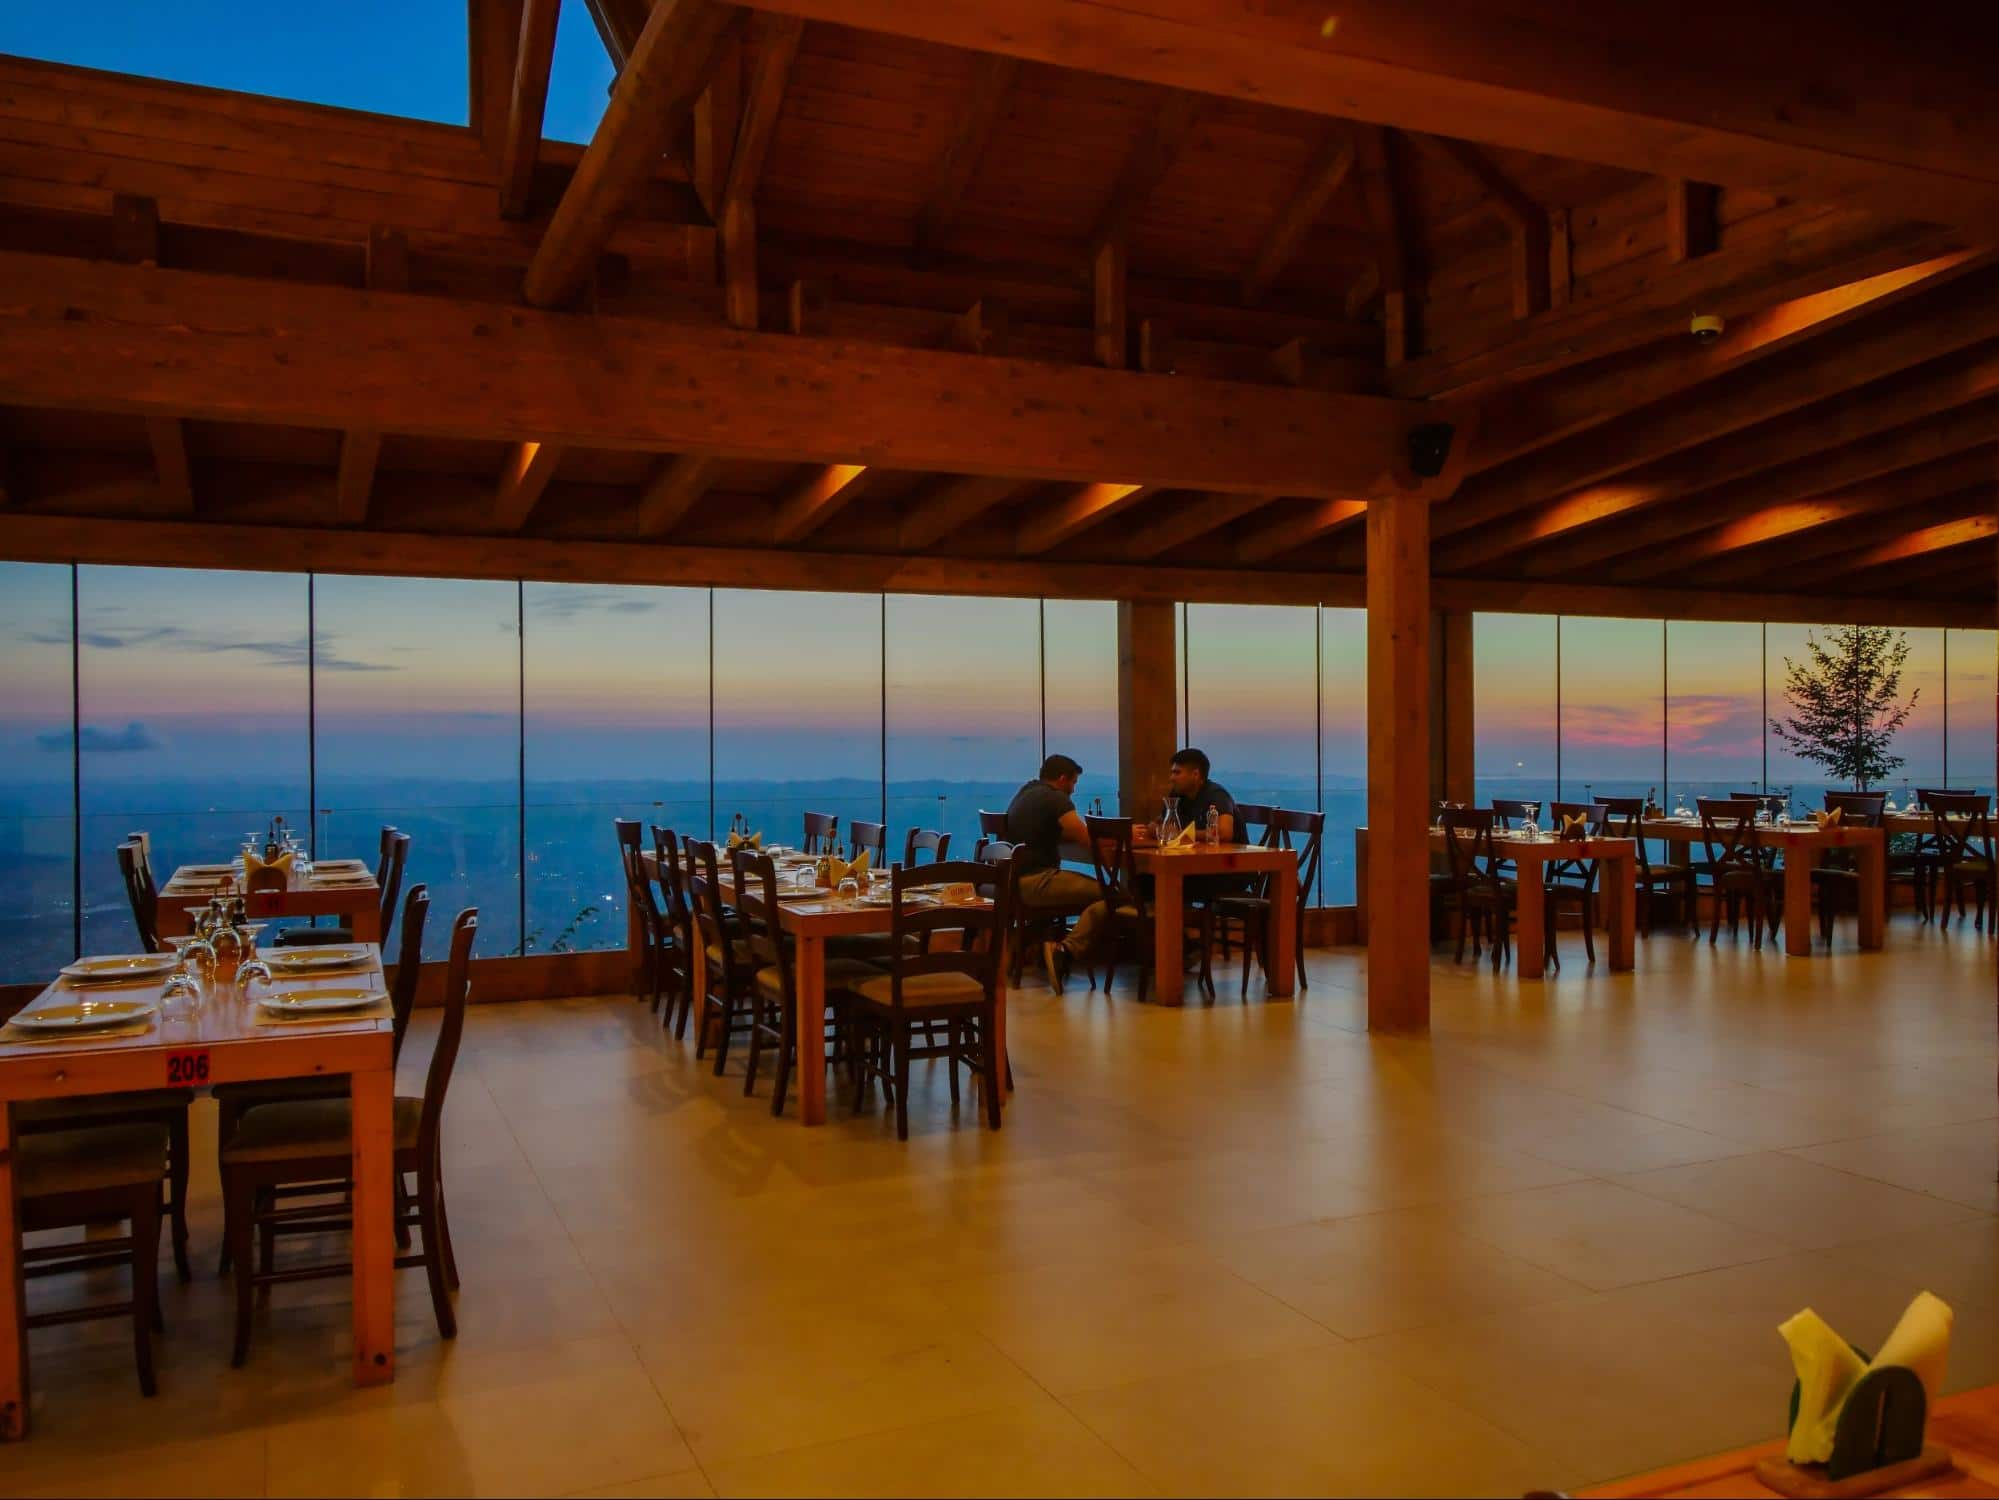 Sunset views from Dajti Mountain edge restaurant